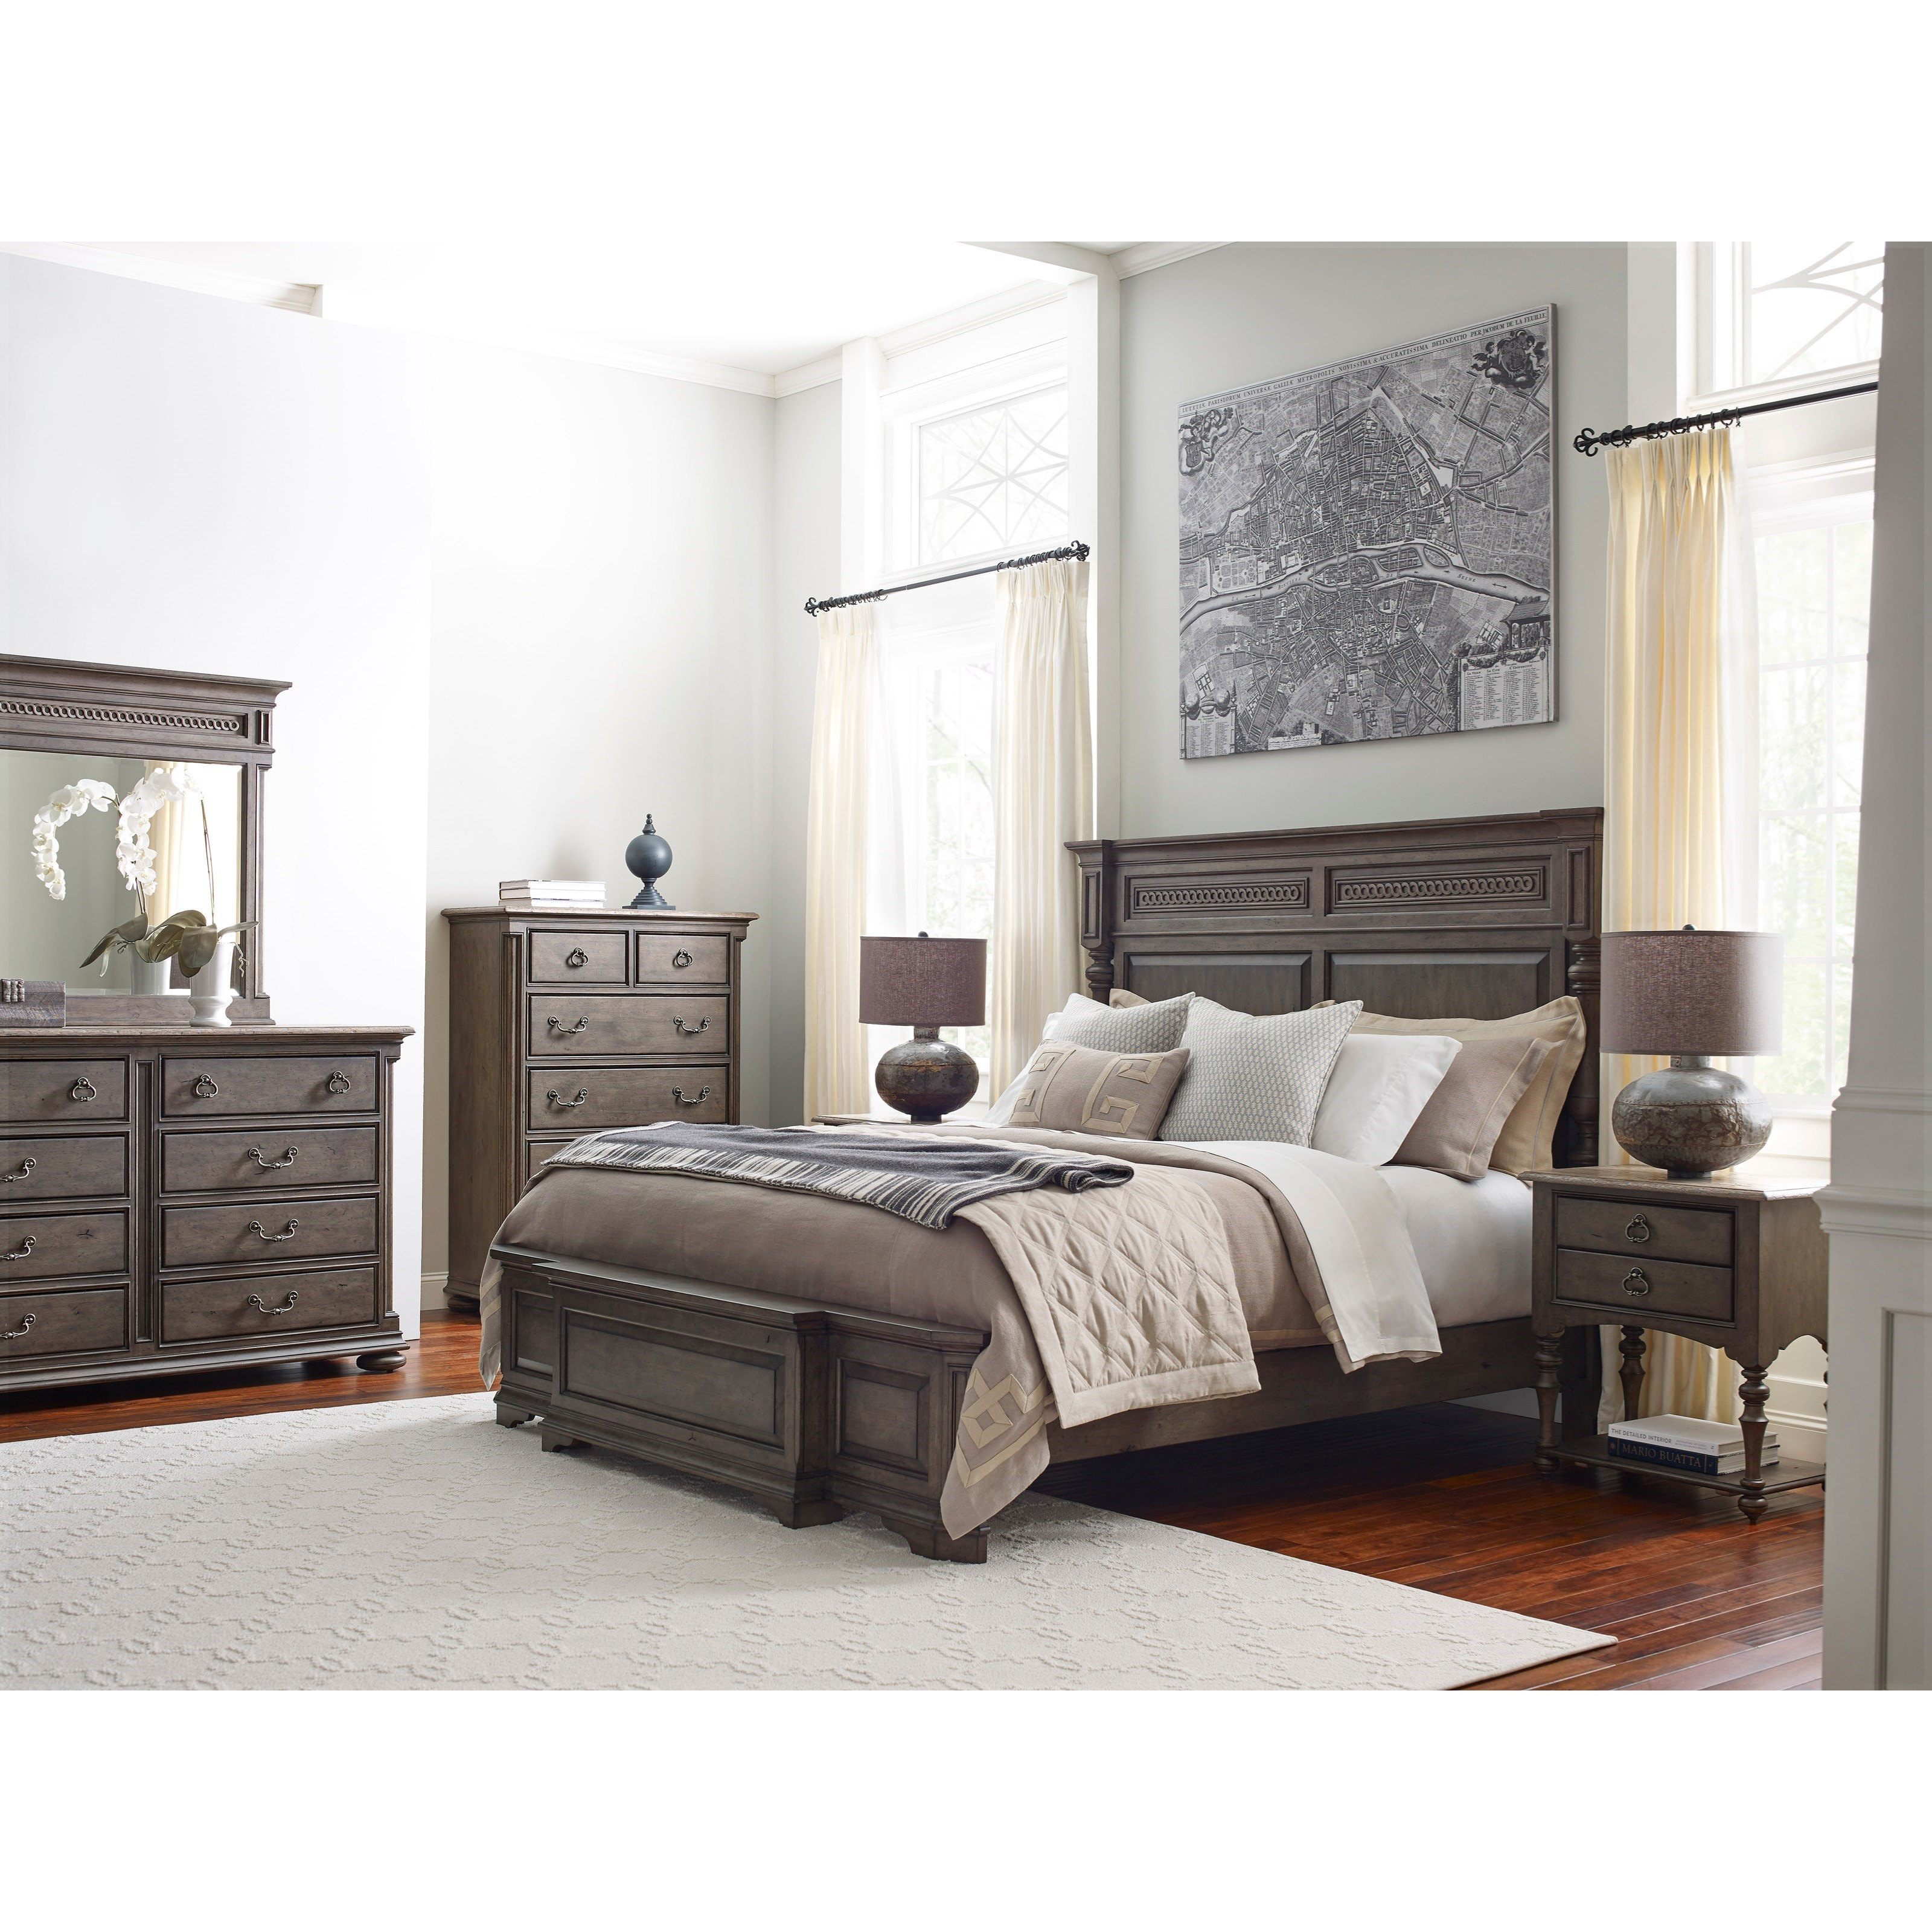 Greyson King Bedroom Group by Kincaid Furniture at Northeast Factory Direct